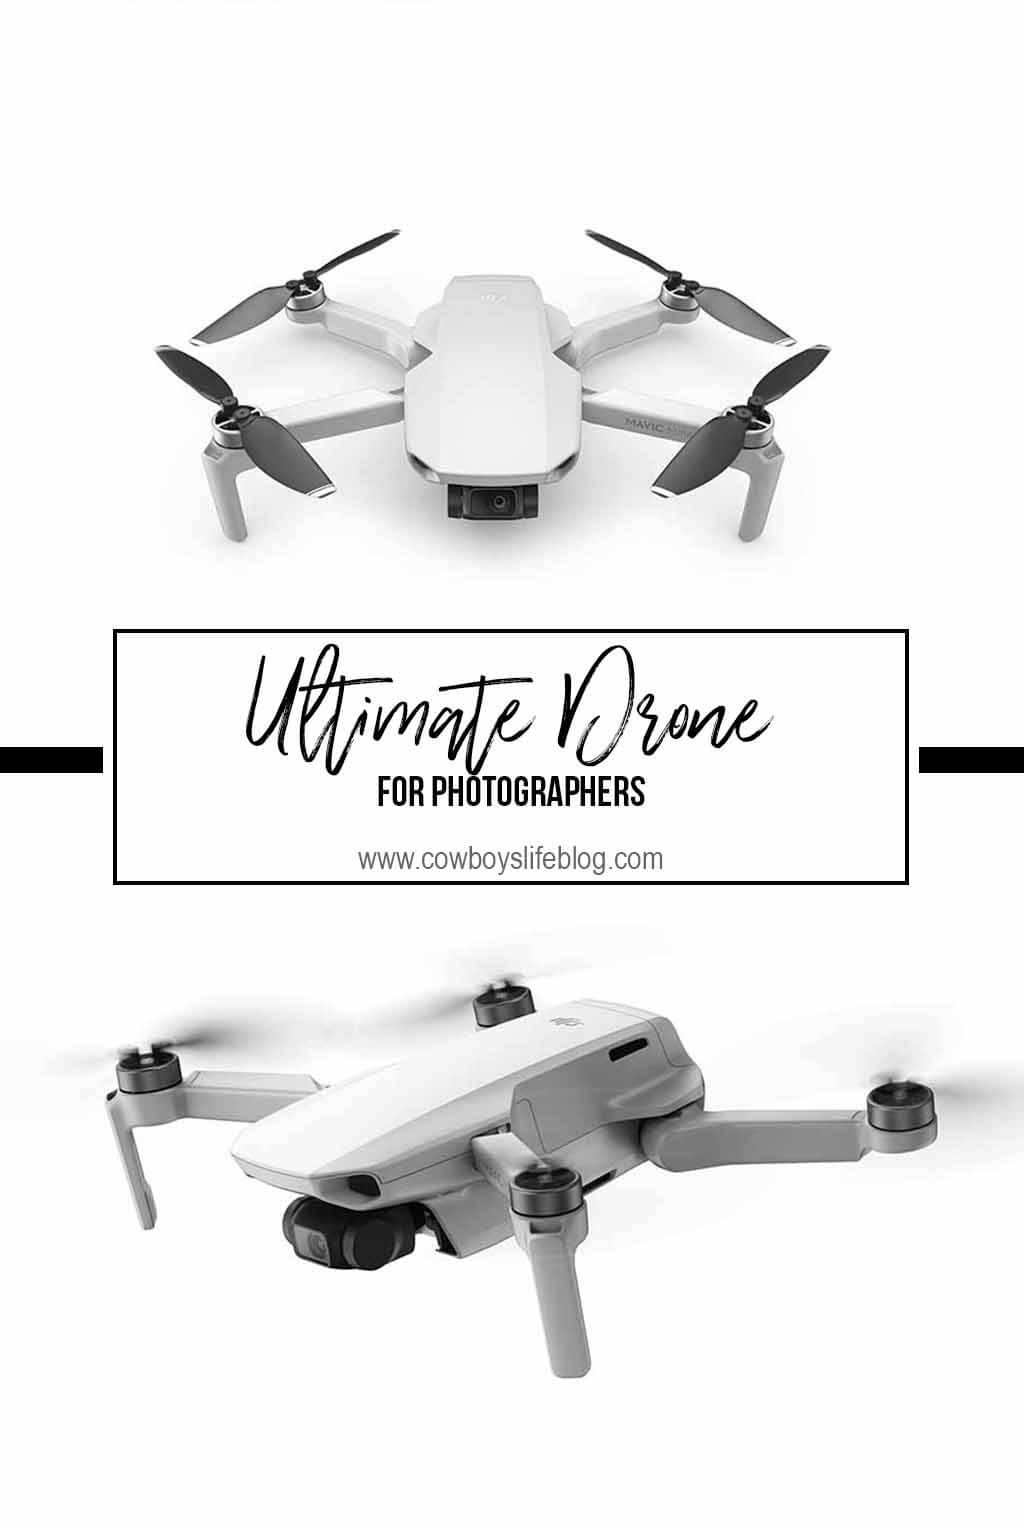 Must have drone for photographers